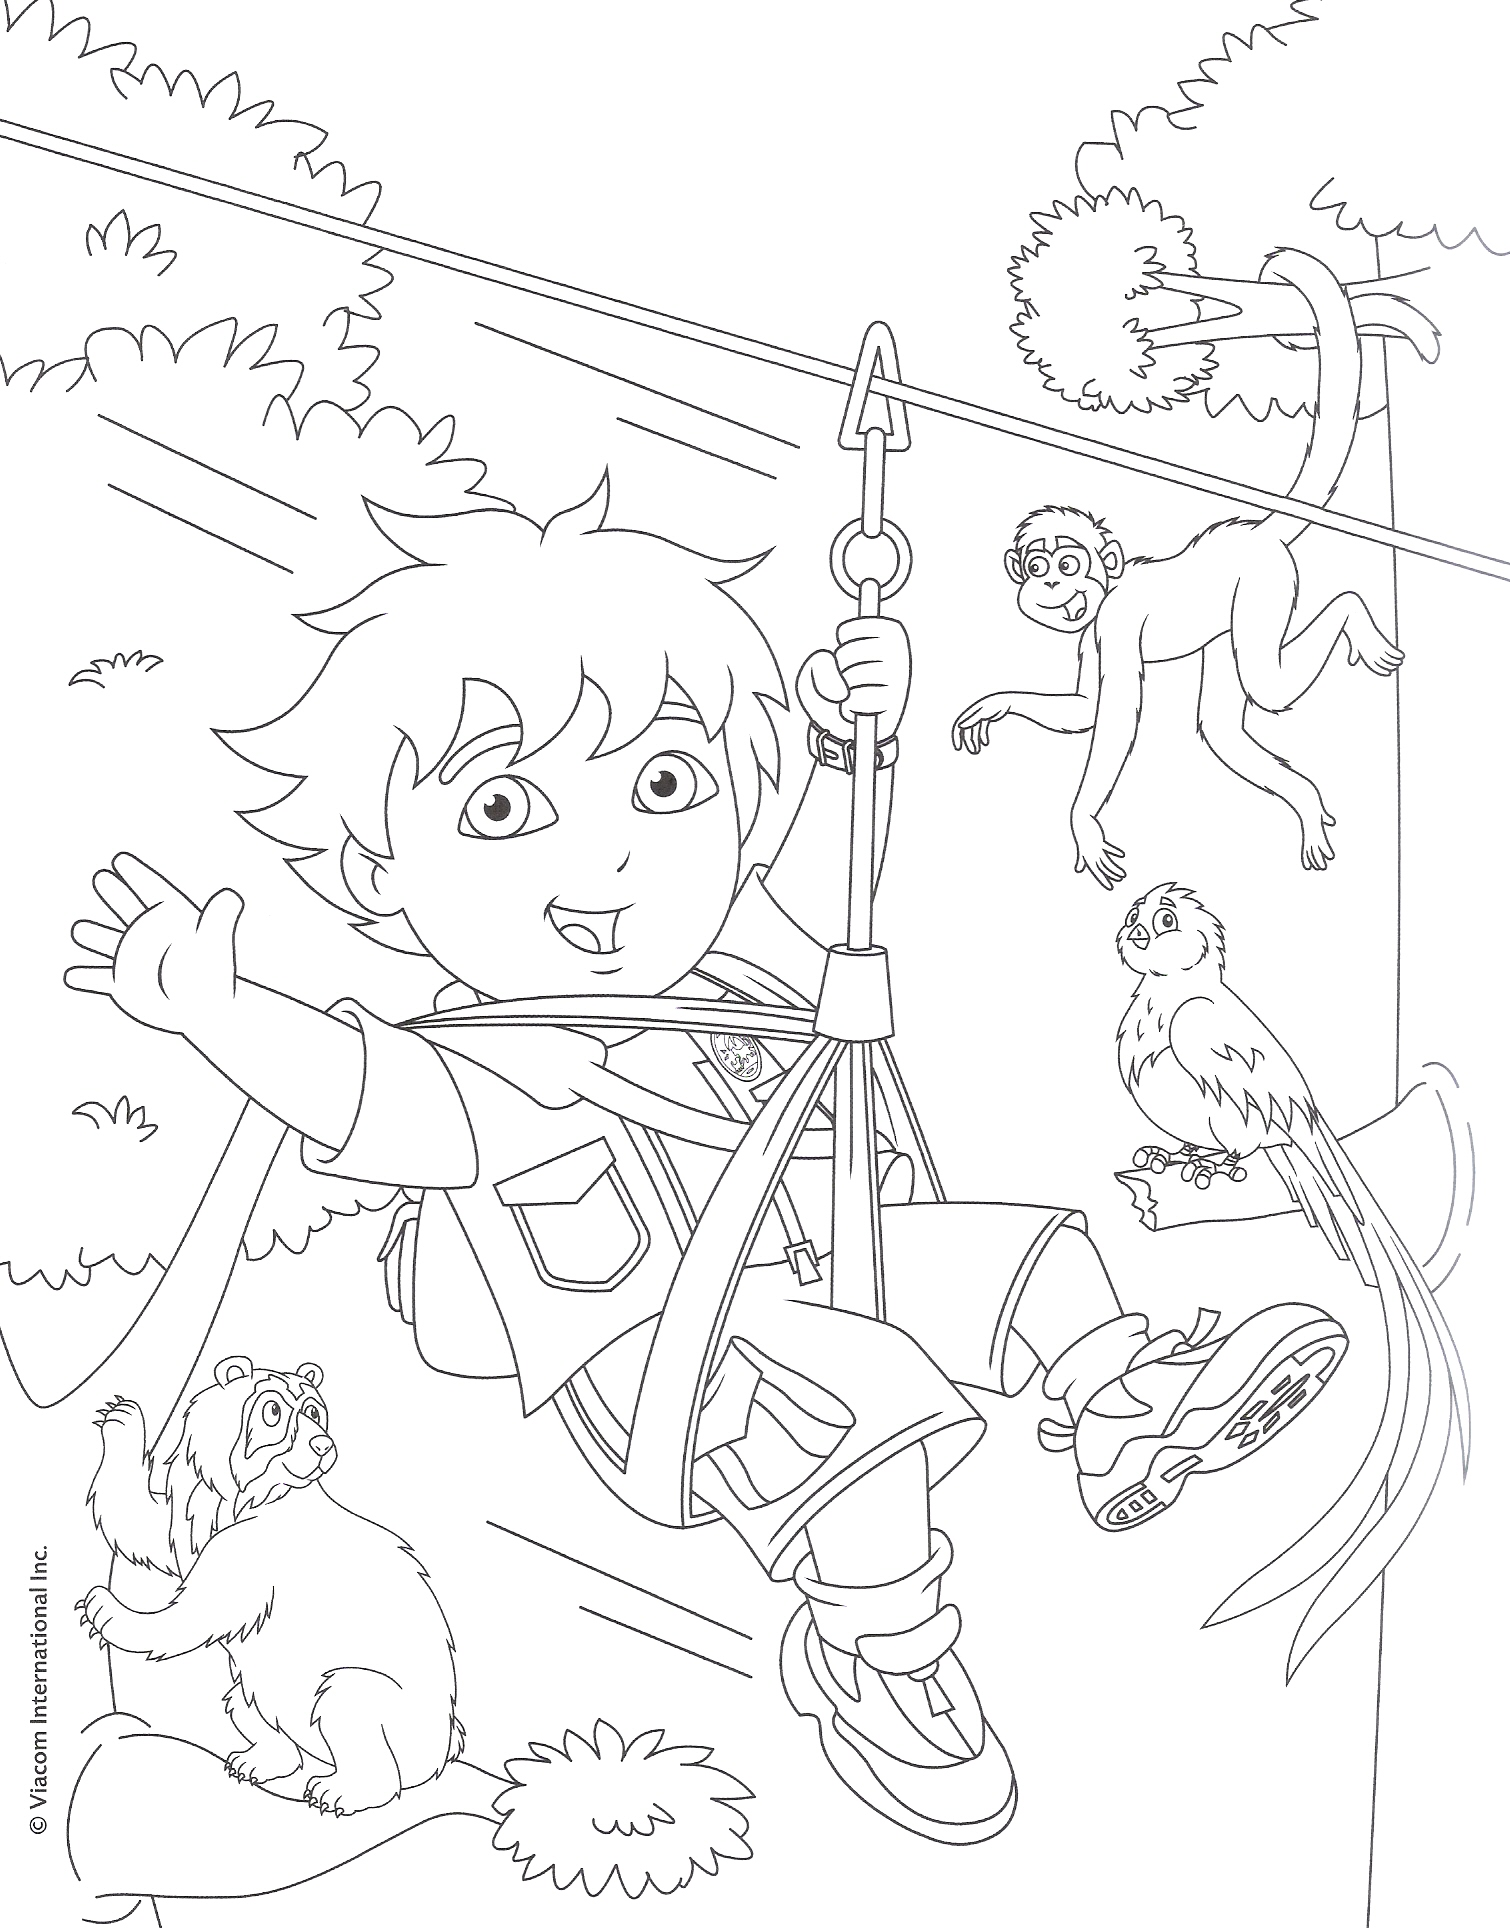 deigo coloring pages - photo#34